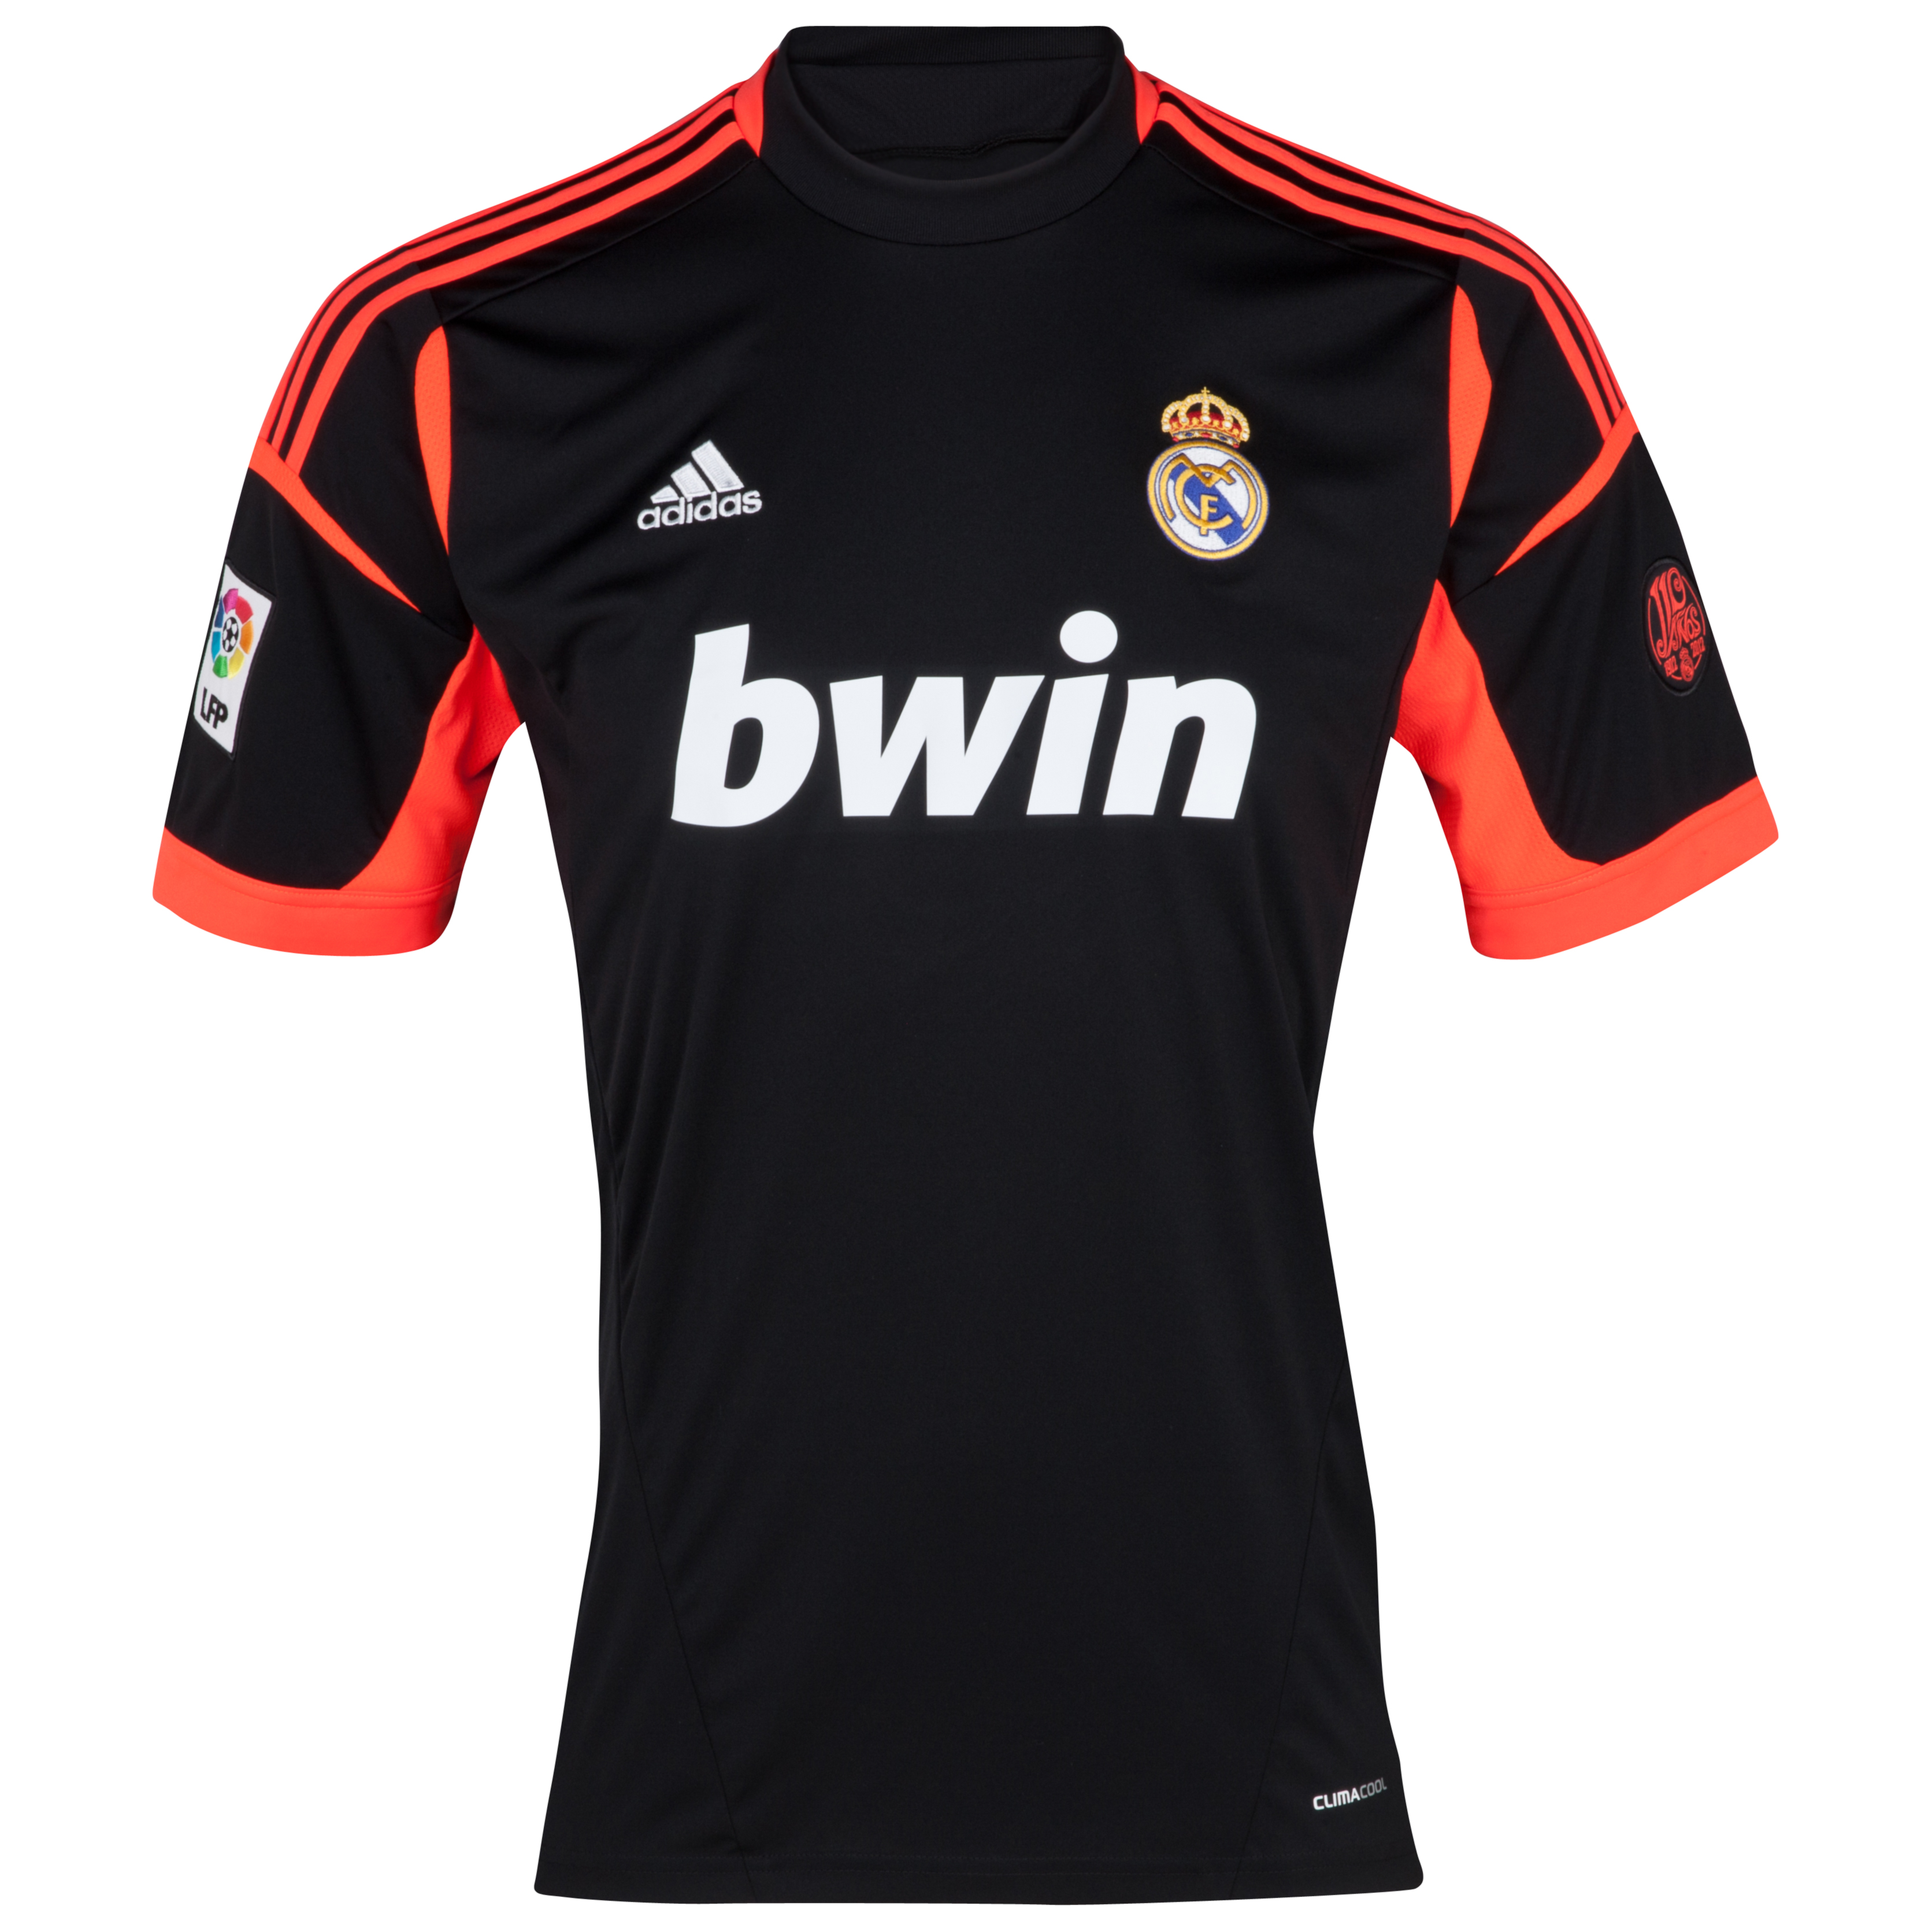 Camiseta 2 Equipacin de Portero del Real Madrid 2012/13 - Negro